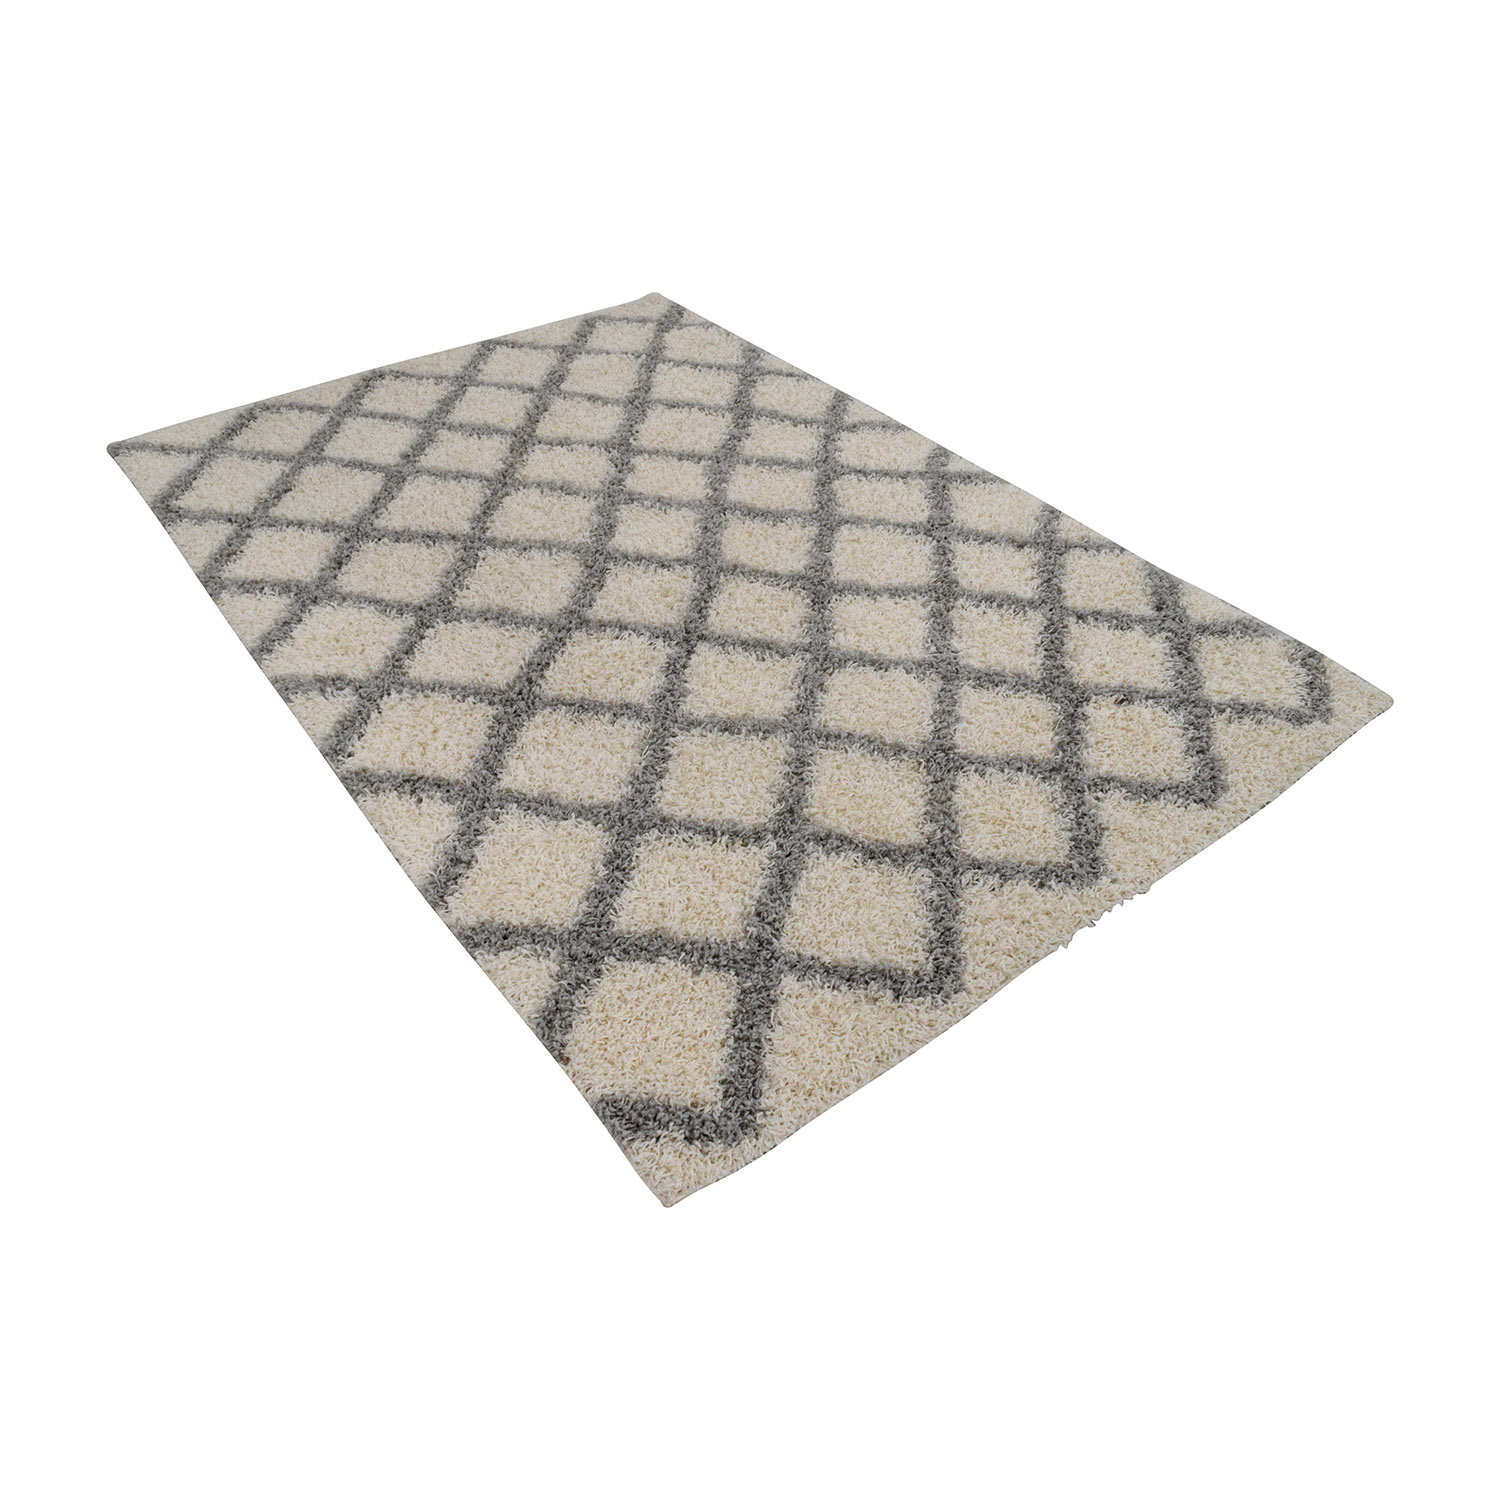 shop Safavieh Safavieh Dallas Shag Ivory and Grey Trellis Rug online